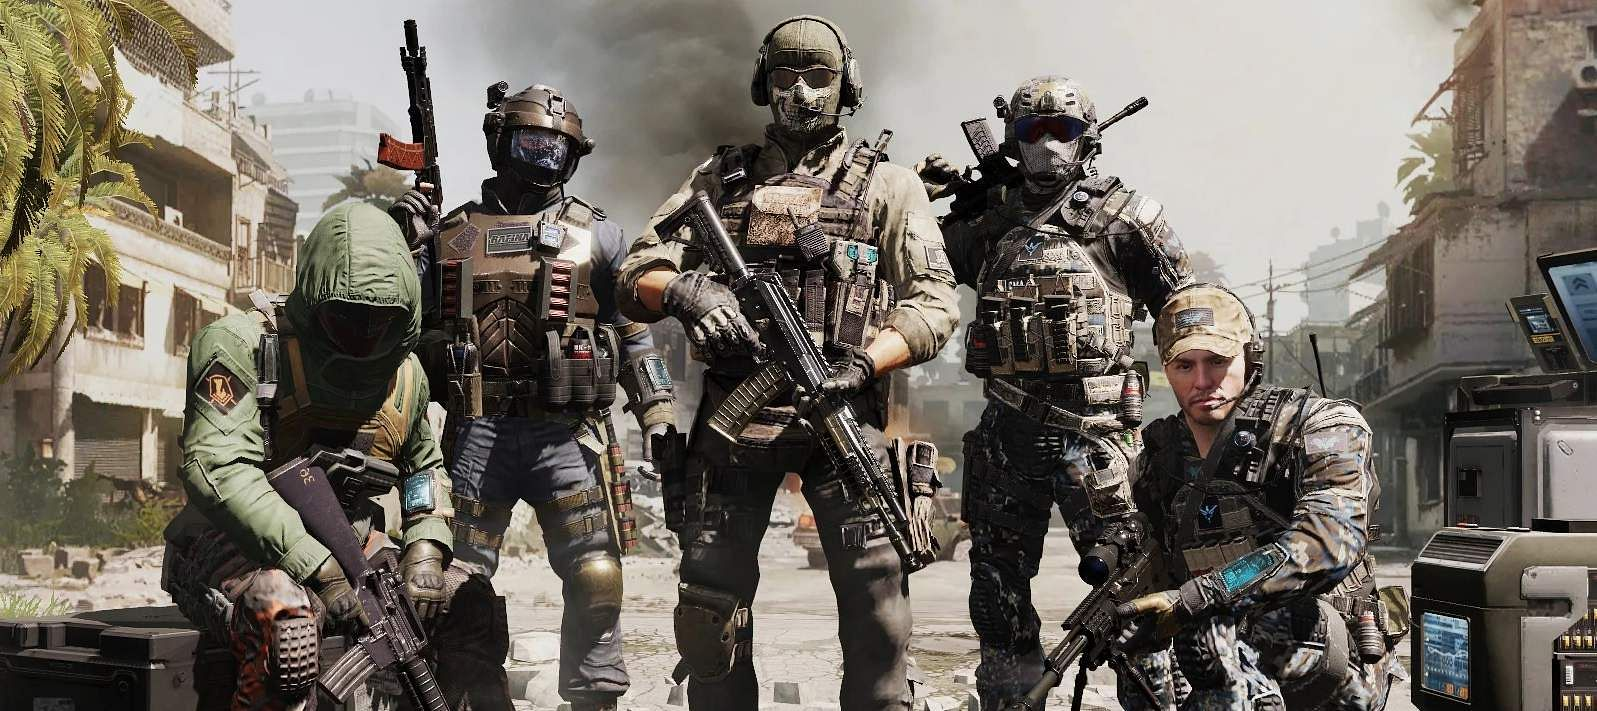 Call of Duty: Mobile may dethrone PUBG: Mobile as India's